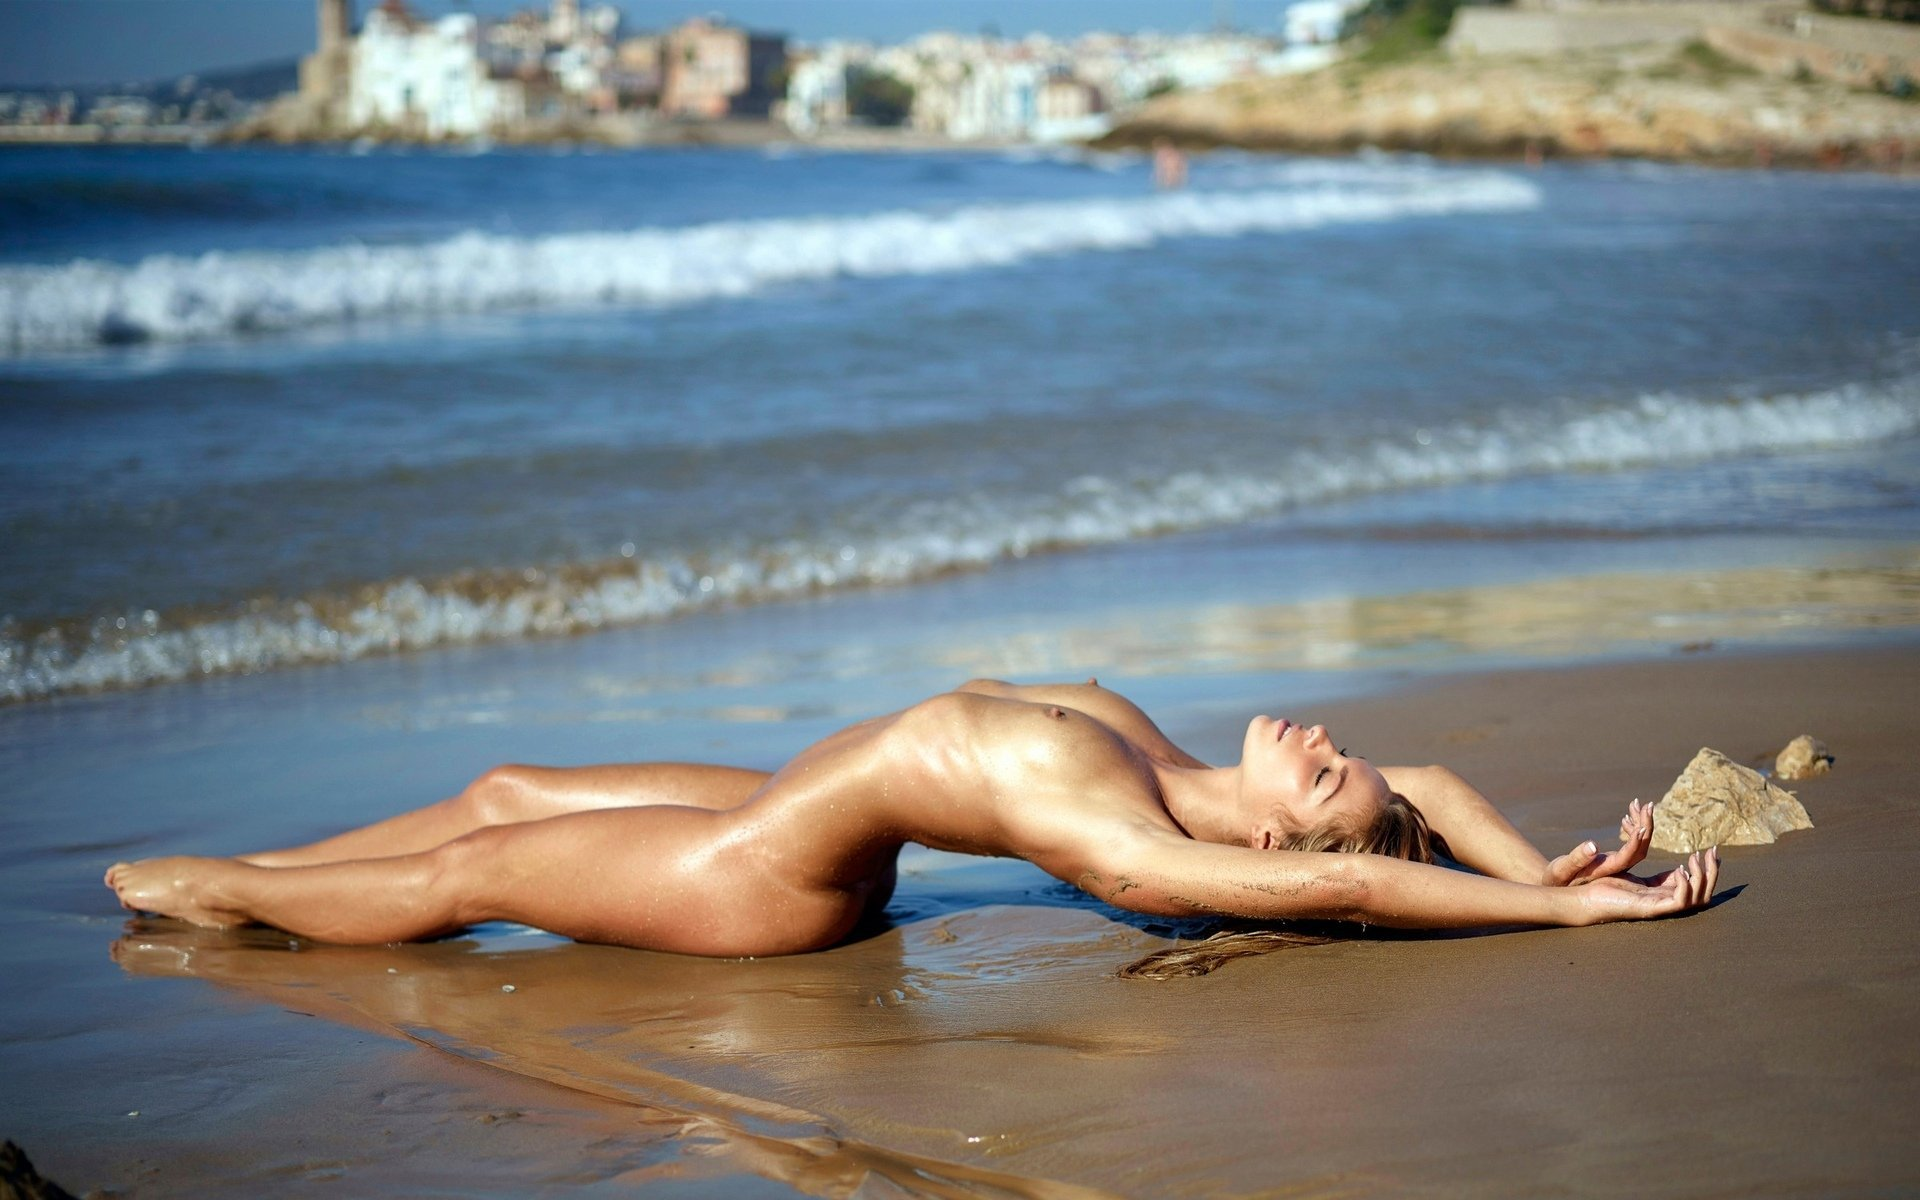 Photos from nude beaches